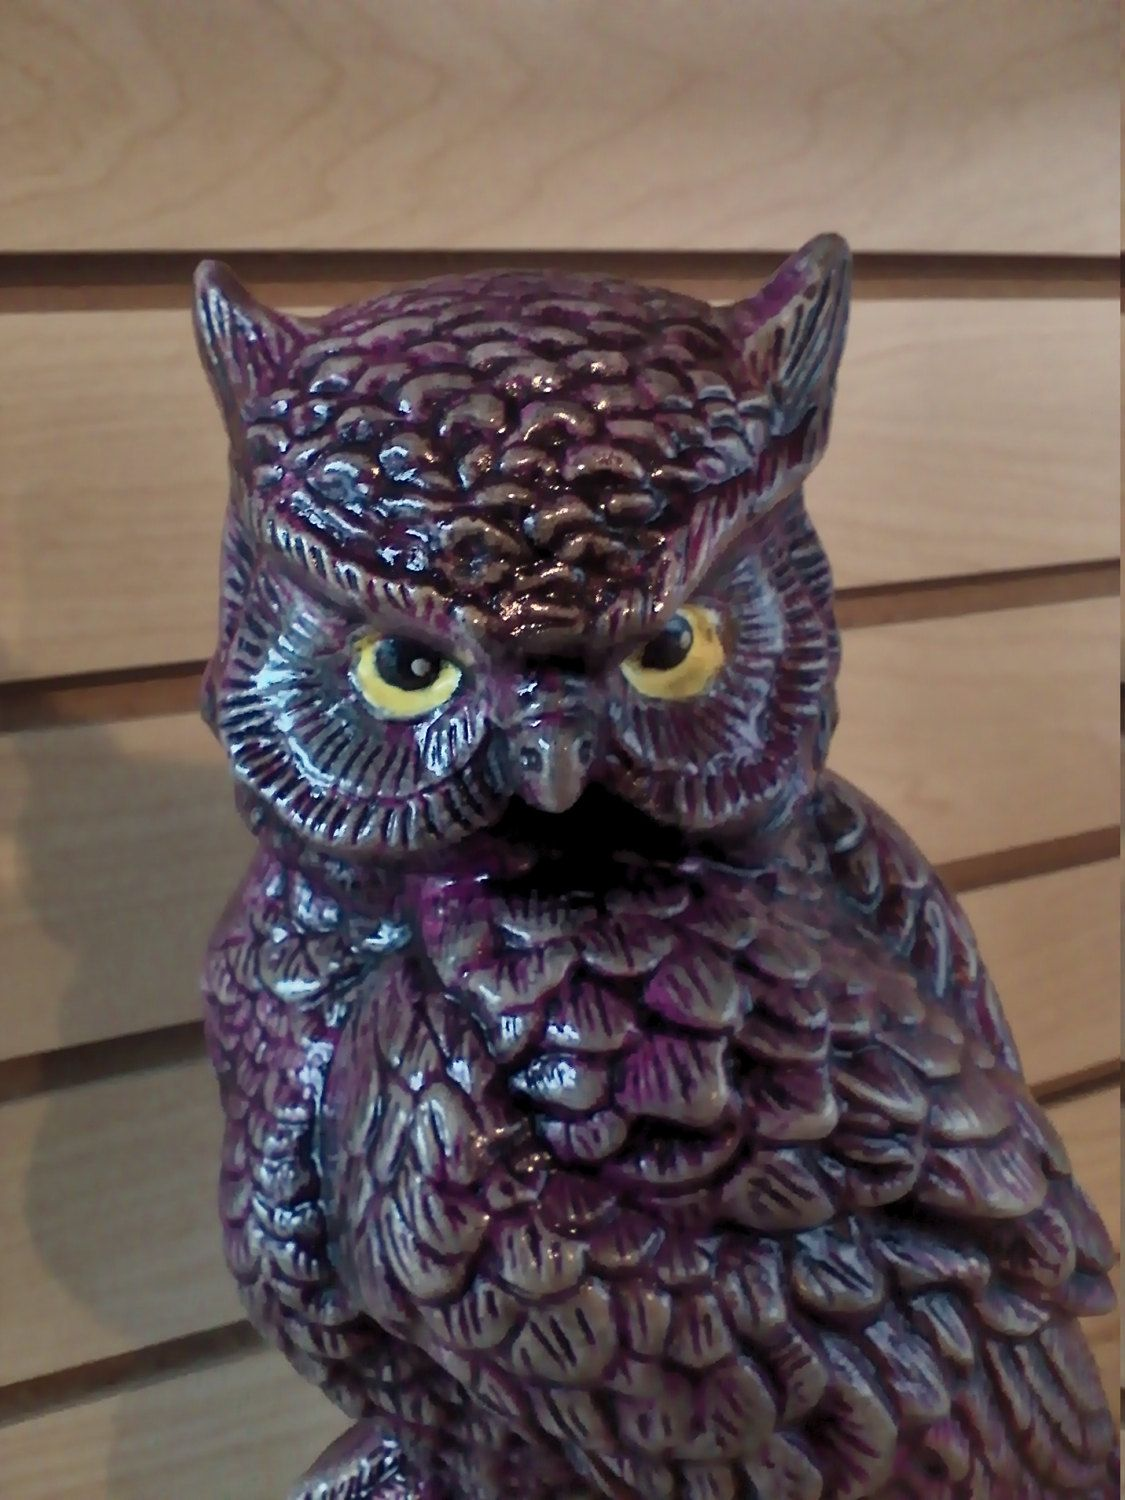 Outdoor garden statue Ceramic Owl Large whimsical owl with